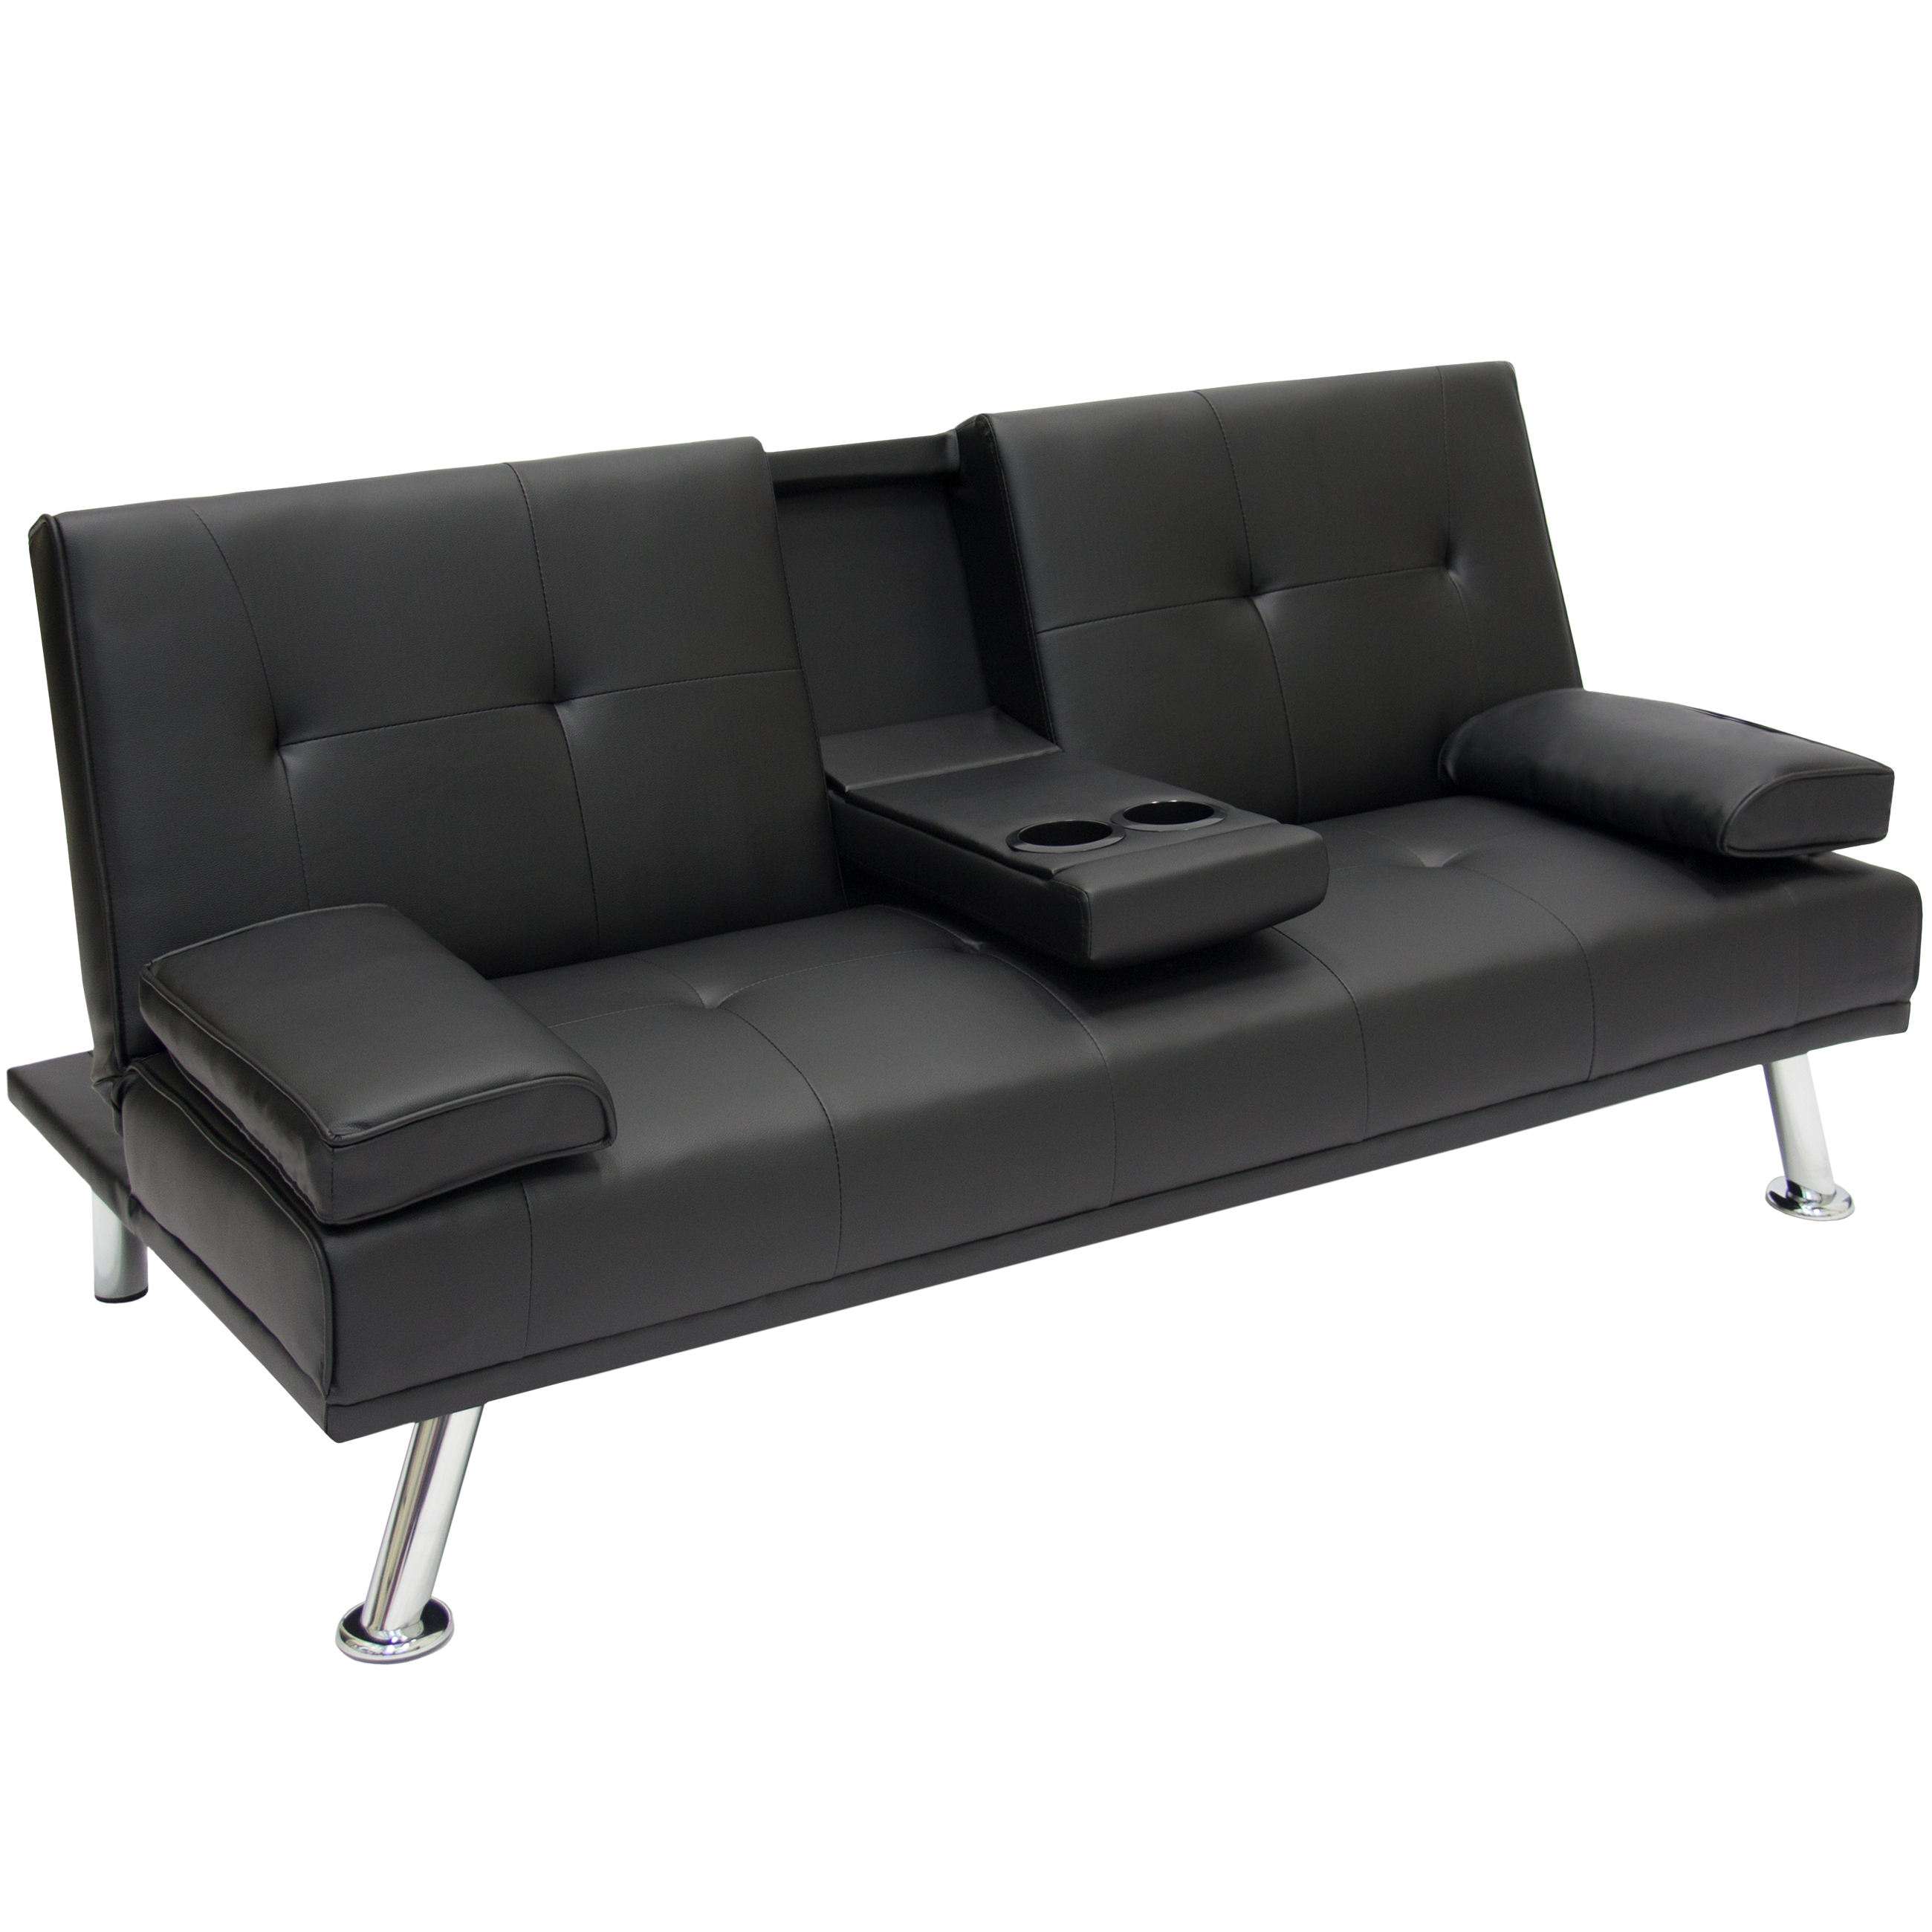 Sofa Modern Best Choice Products Modern Entertainment Futon Sofa Bed Fold Up Down Recliner Couch With Cup Holders Furniture